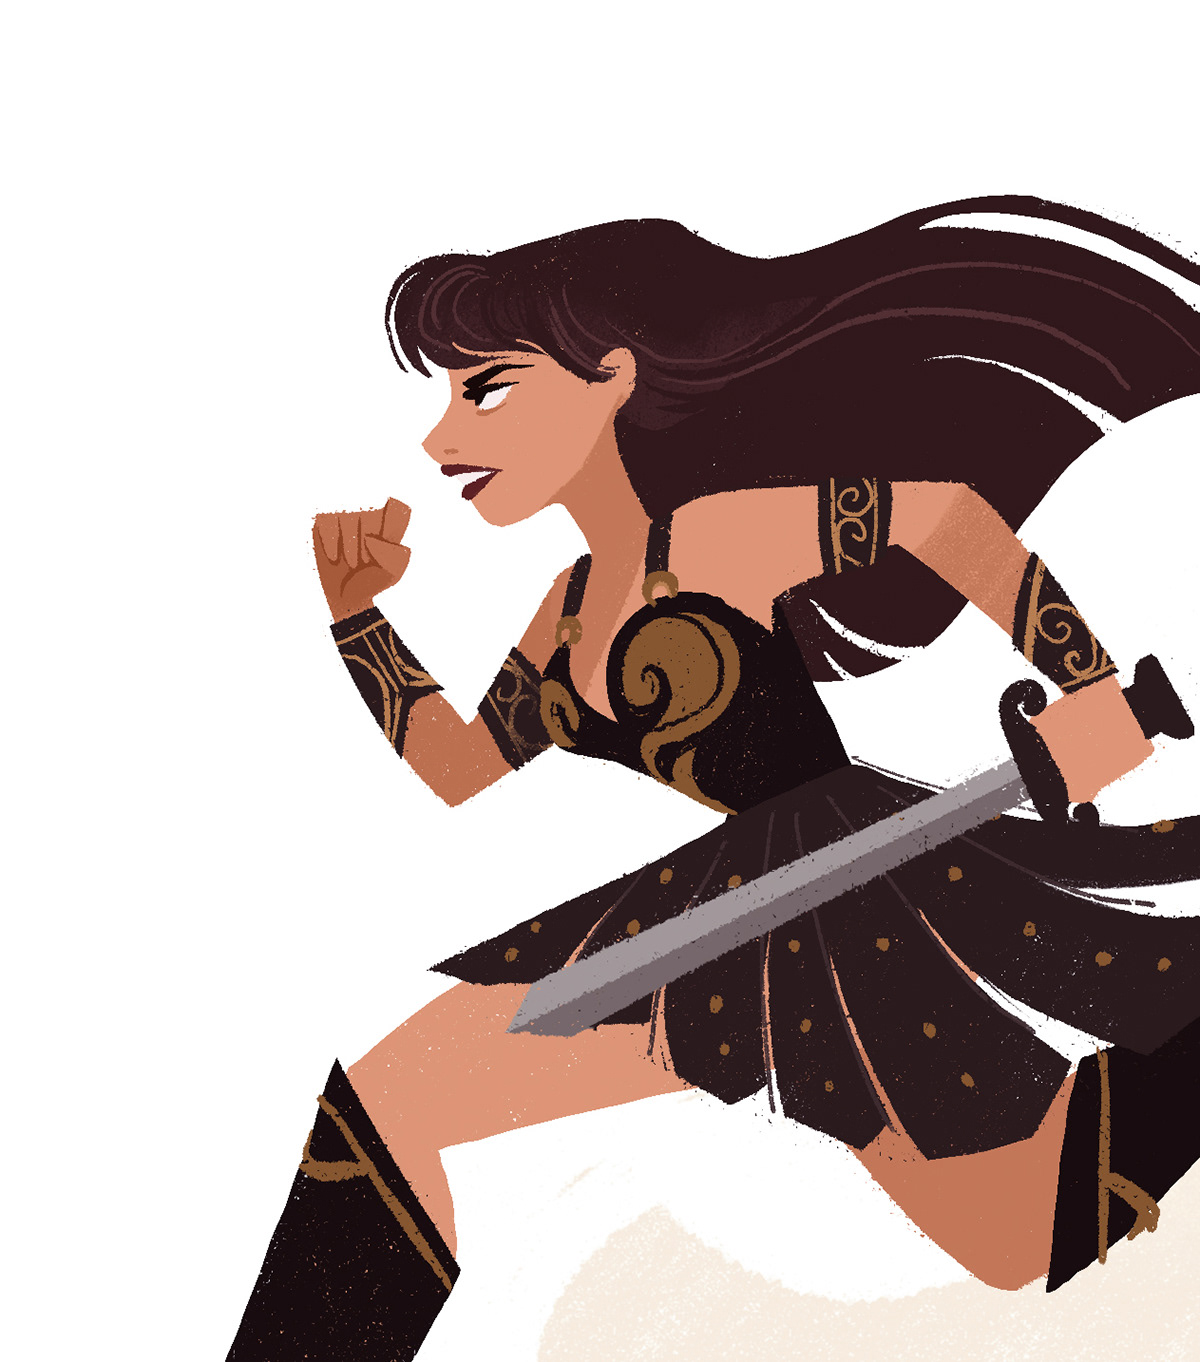 Xena Warrior Princess on Behance.